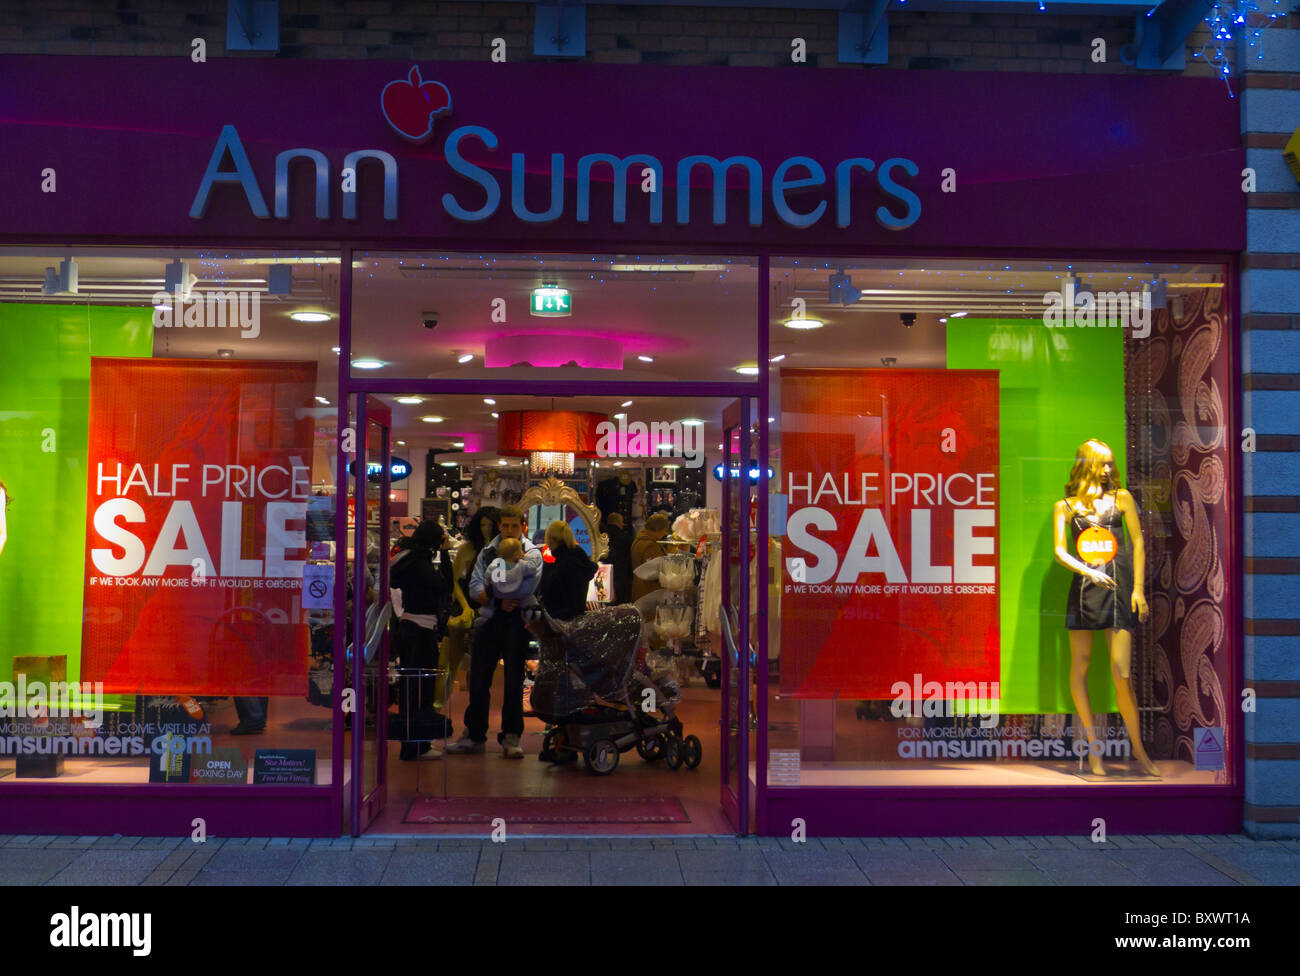 bfdf1d7a6b Ann Summers Shop Stock Photos & Ann Summers Shop Stock Images - Alamy